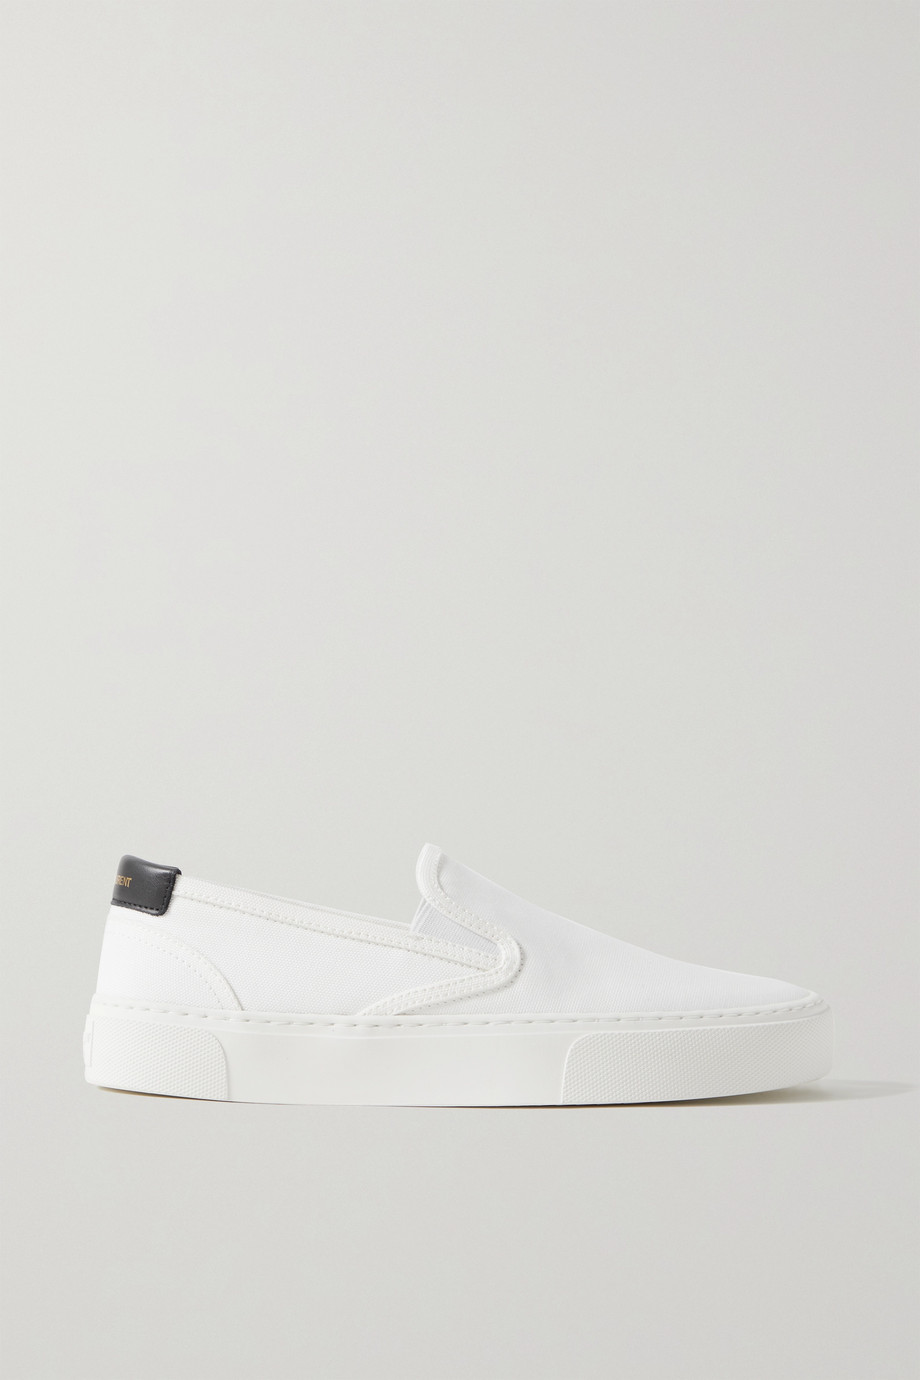 SAINT LAURENT Venice leather-trimmed canvas slip-on sneakers